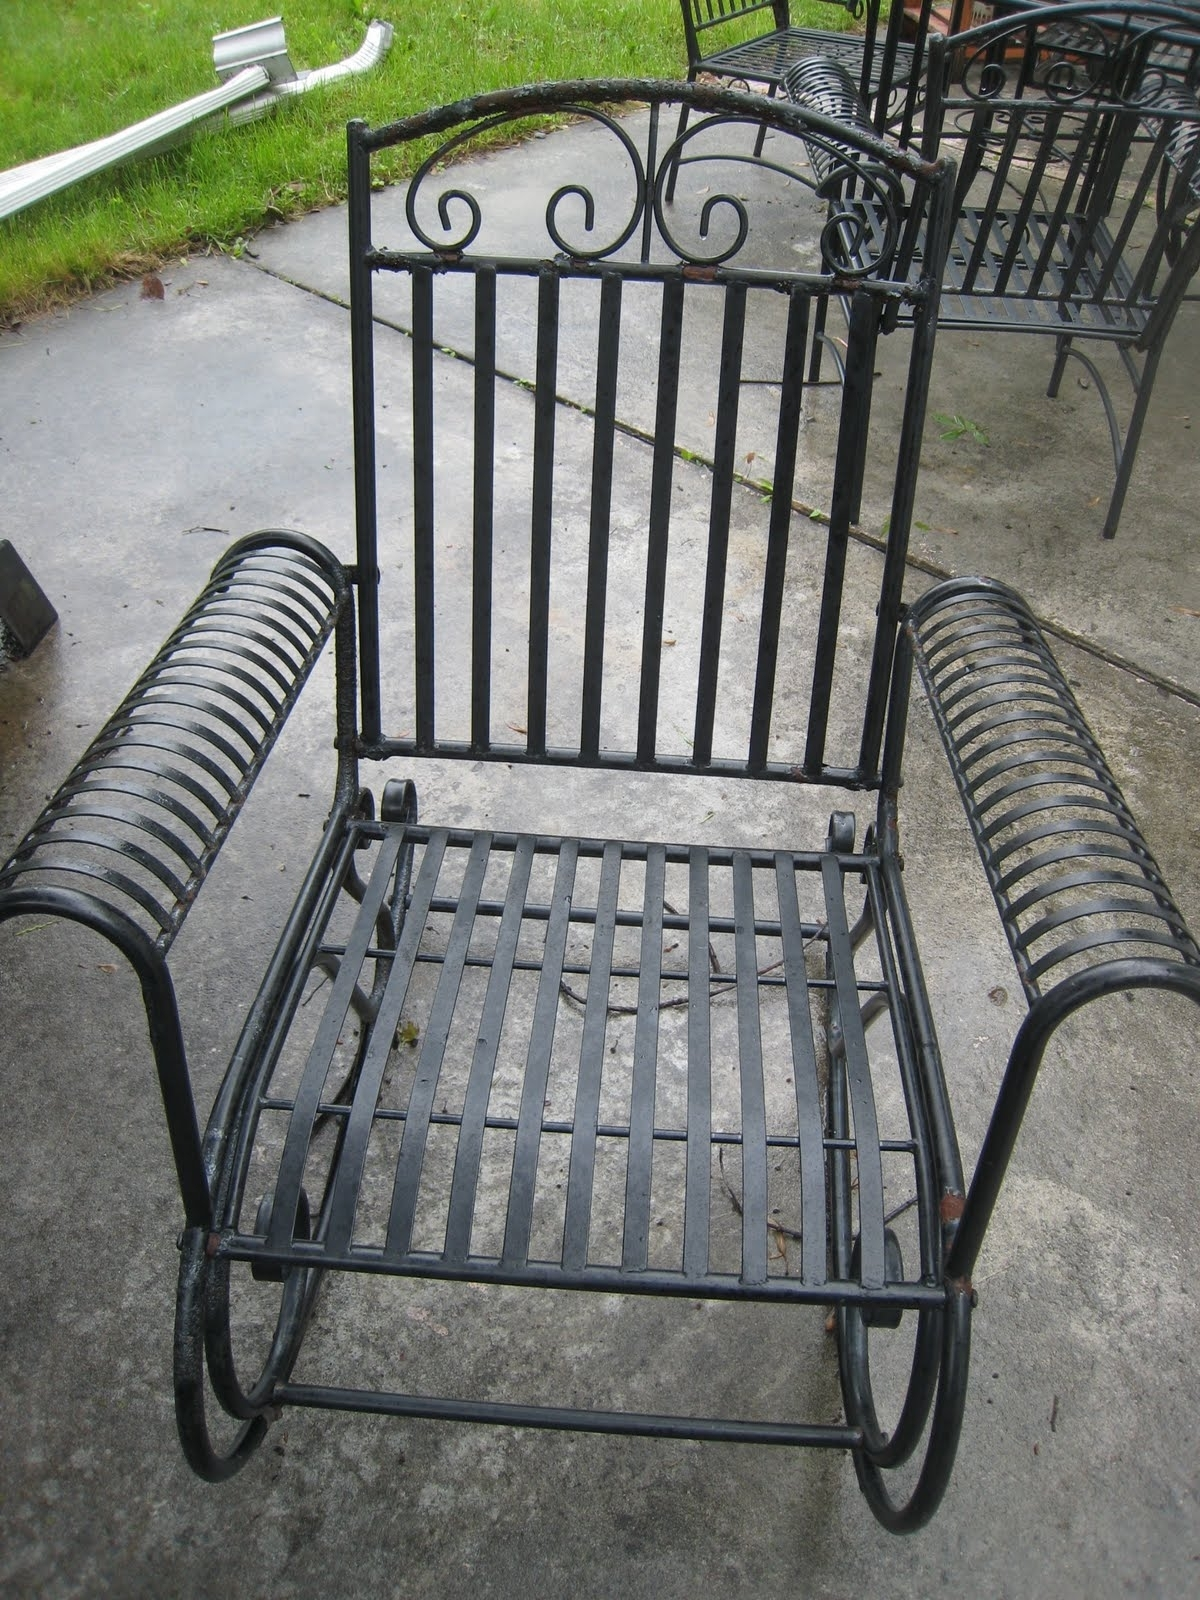 Newest Irresistible Textured Black Outdoor Chairs At Hayneedle Belham Regarding Wrought Iron Patio Rocking Chairs (View 5 of 15)